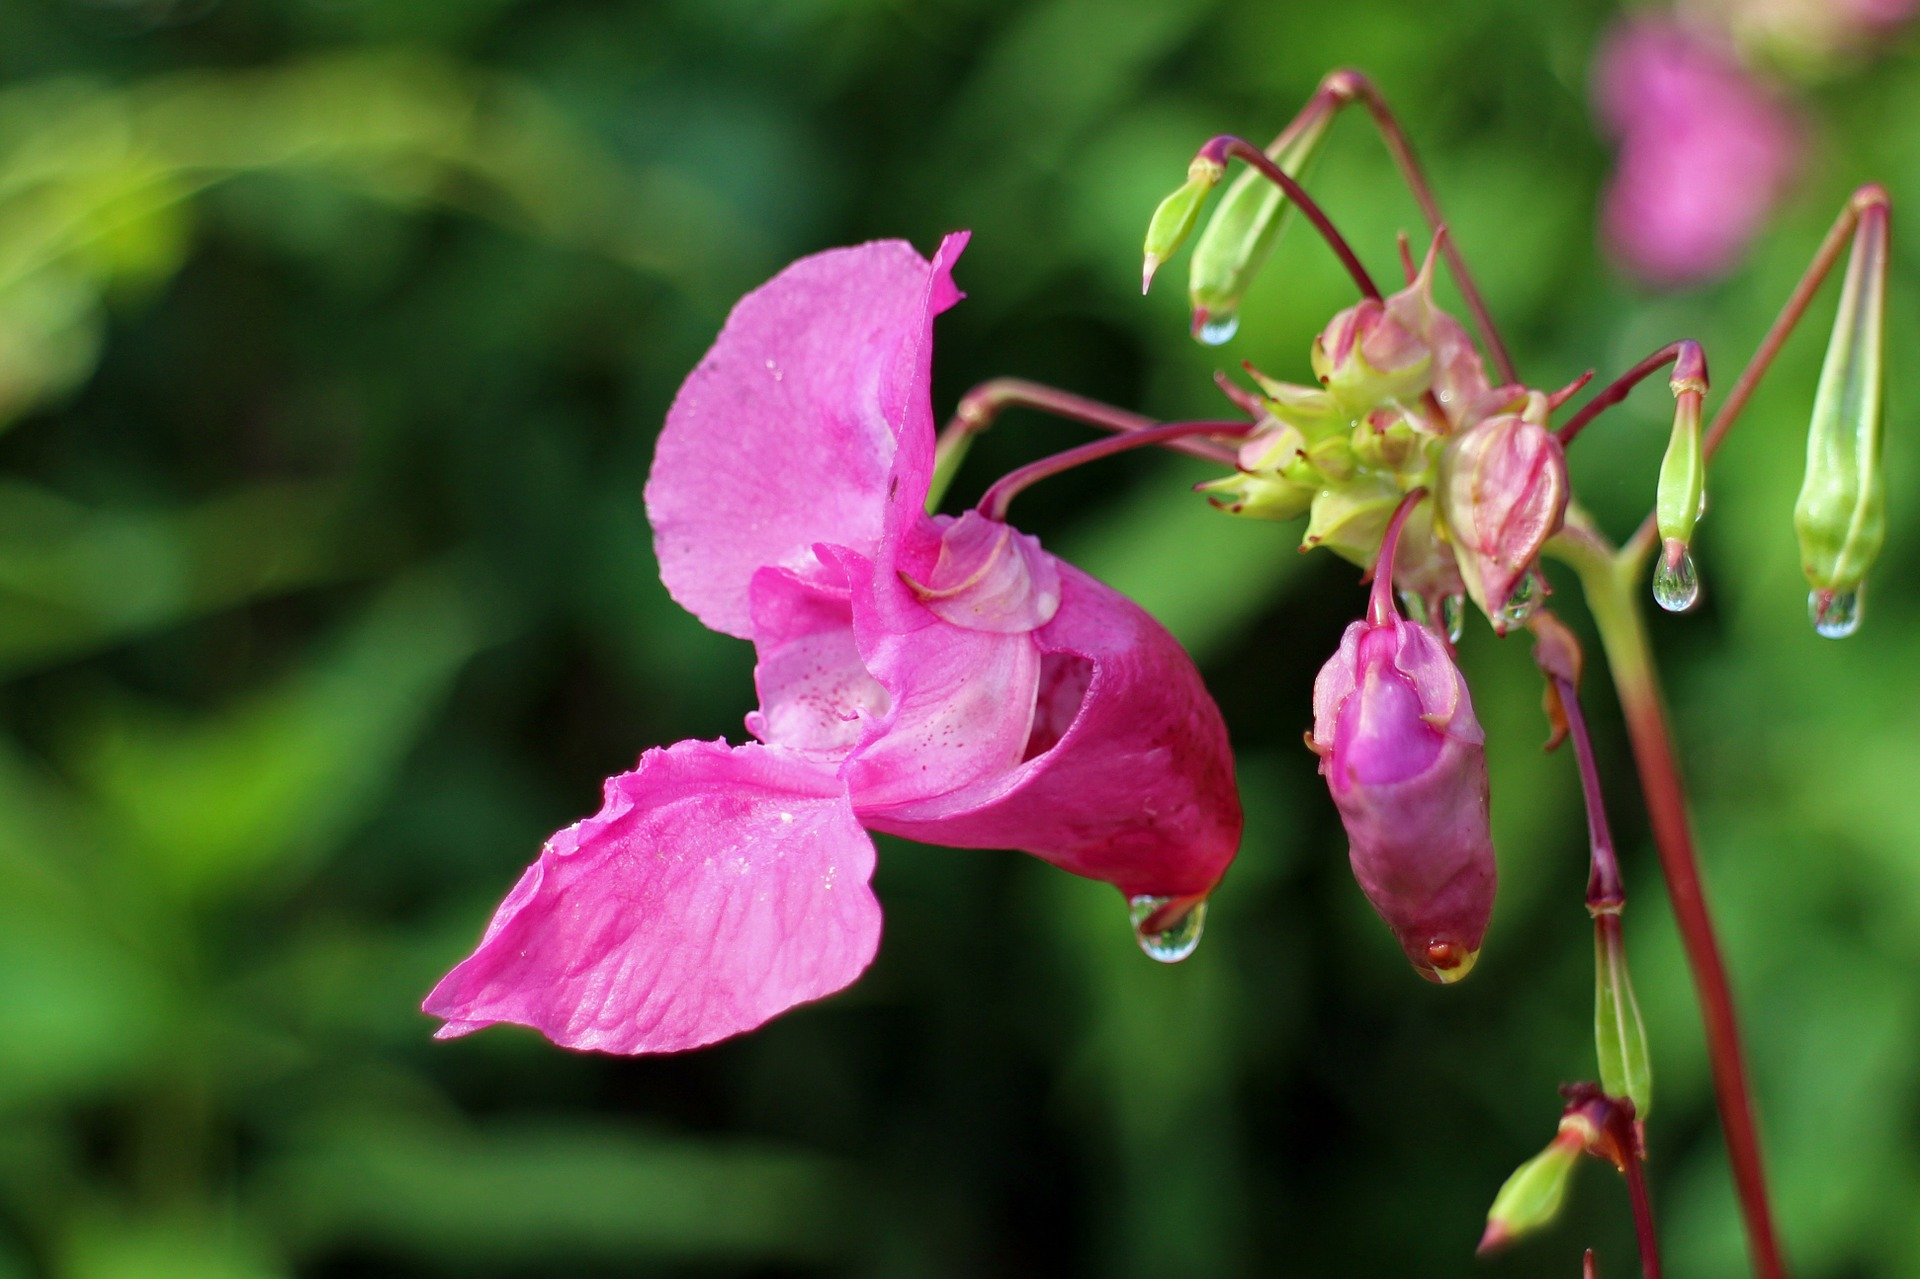 Forage for himalayan balsam